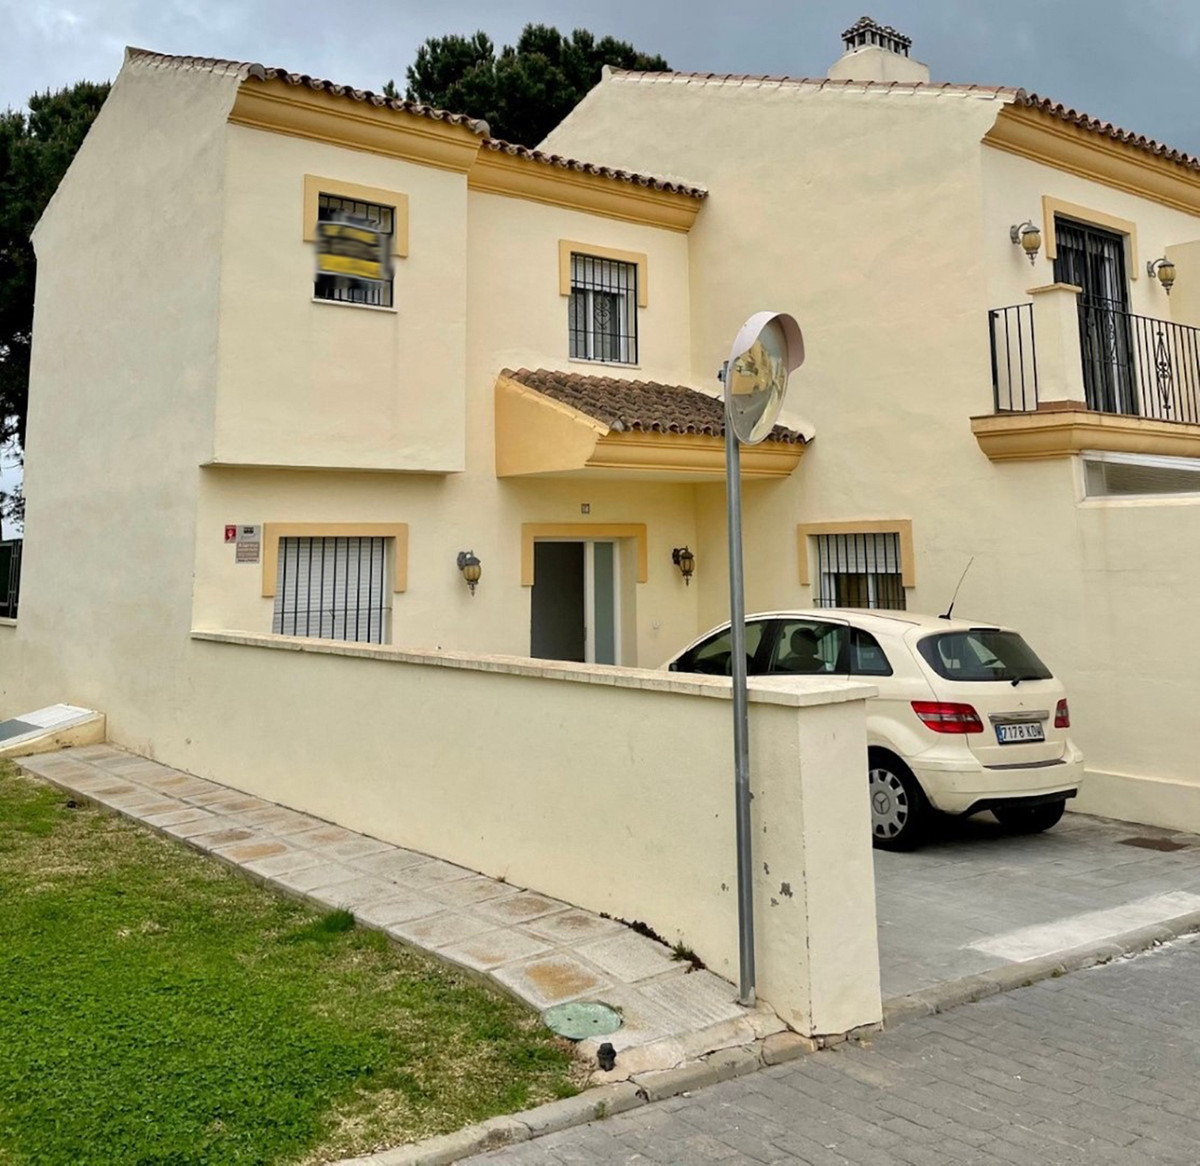 Beautiful townhouse in Elviria 2 parking at the main entrance next to the entrance. 2 floors of 75m2,Spain